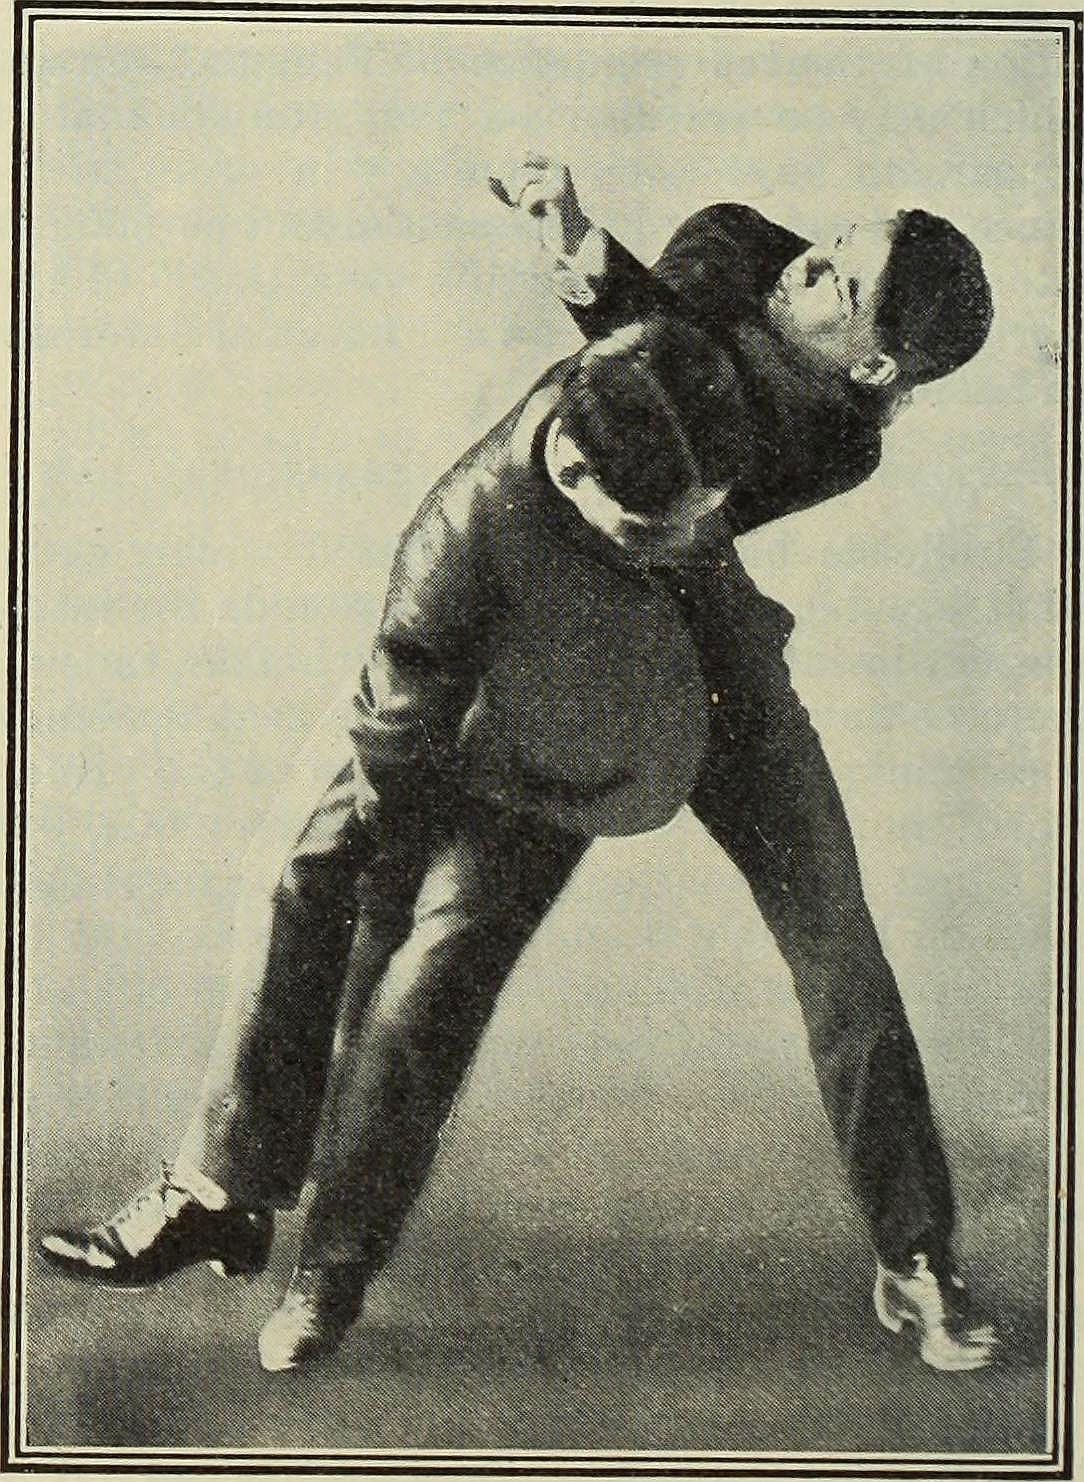 sports-martial arts-jiu-jitsu-interet archive----Image from page 215 of Review of reviews and world's work (1890) 14763340931